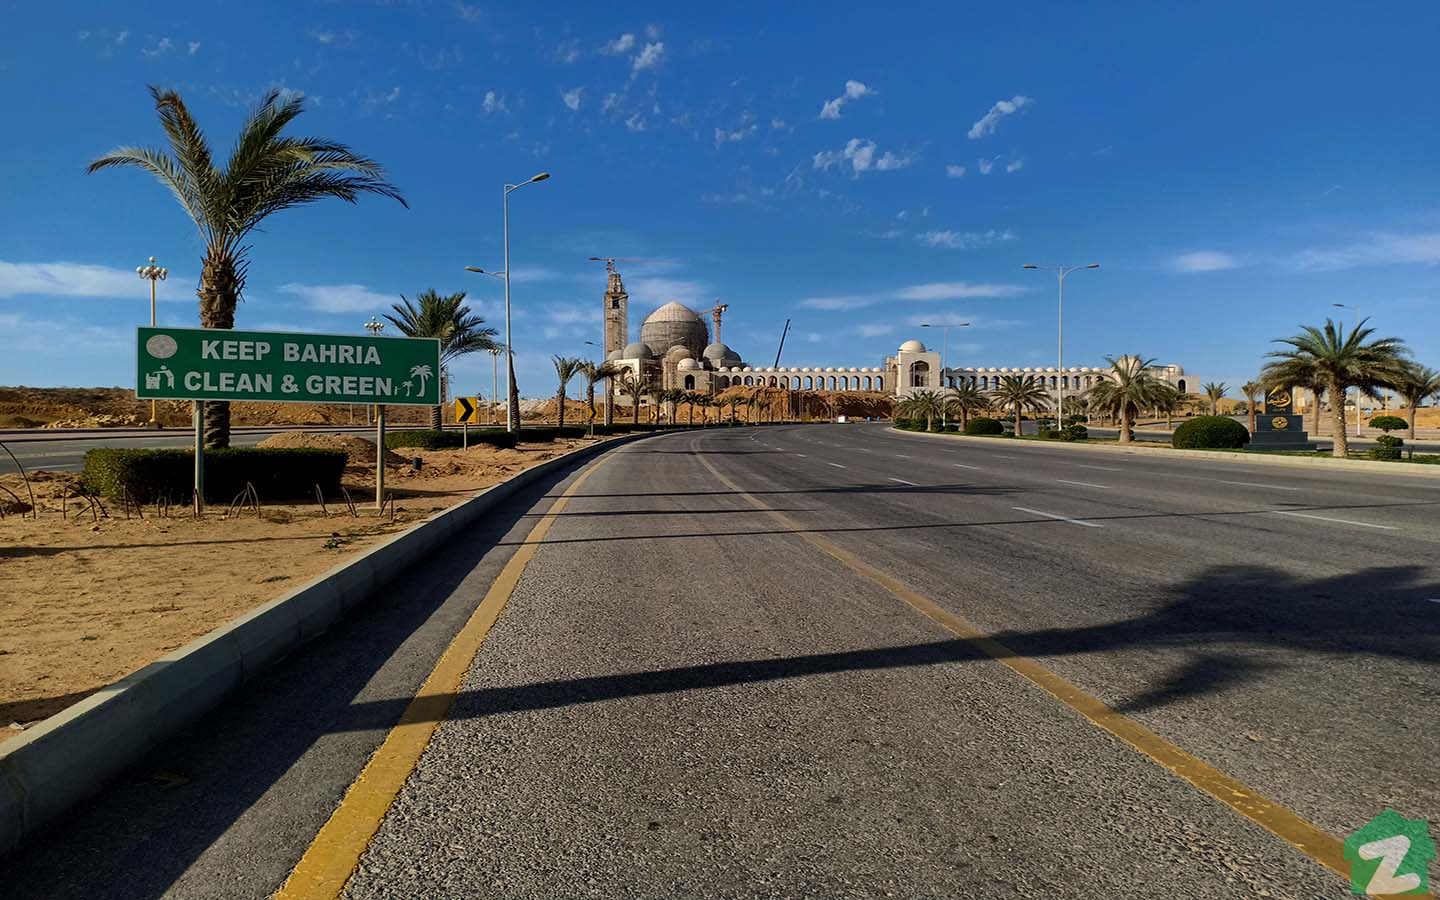 Wide roads in Bahria Town Karachi